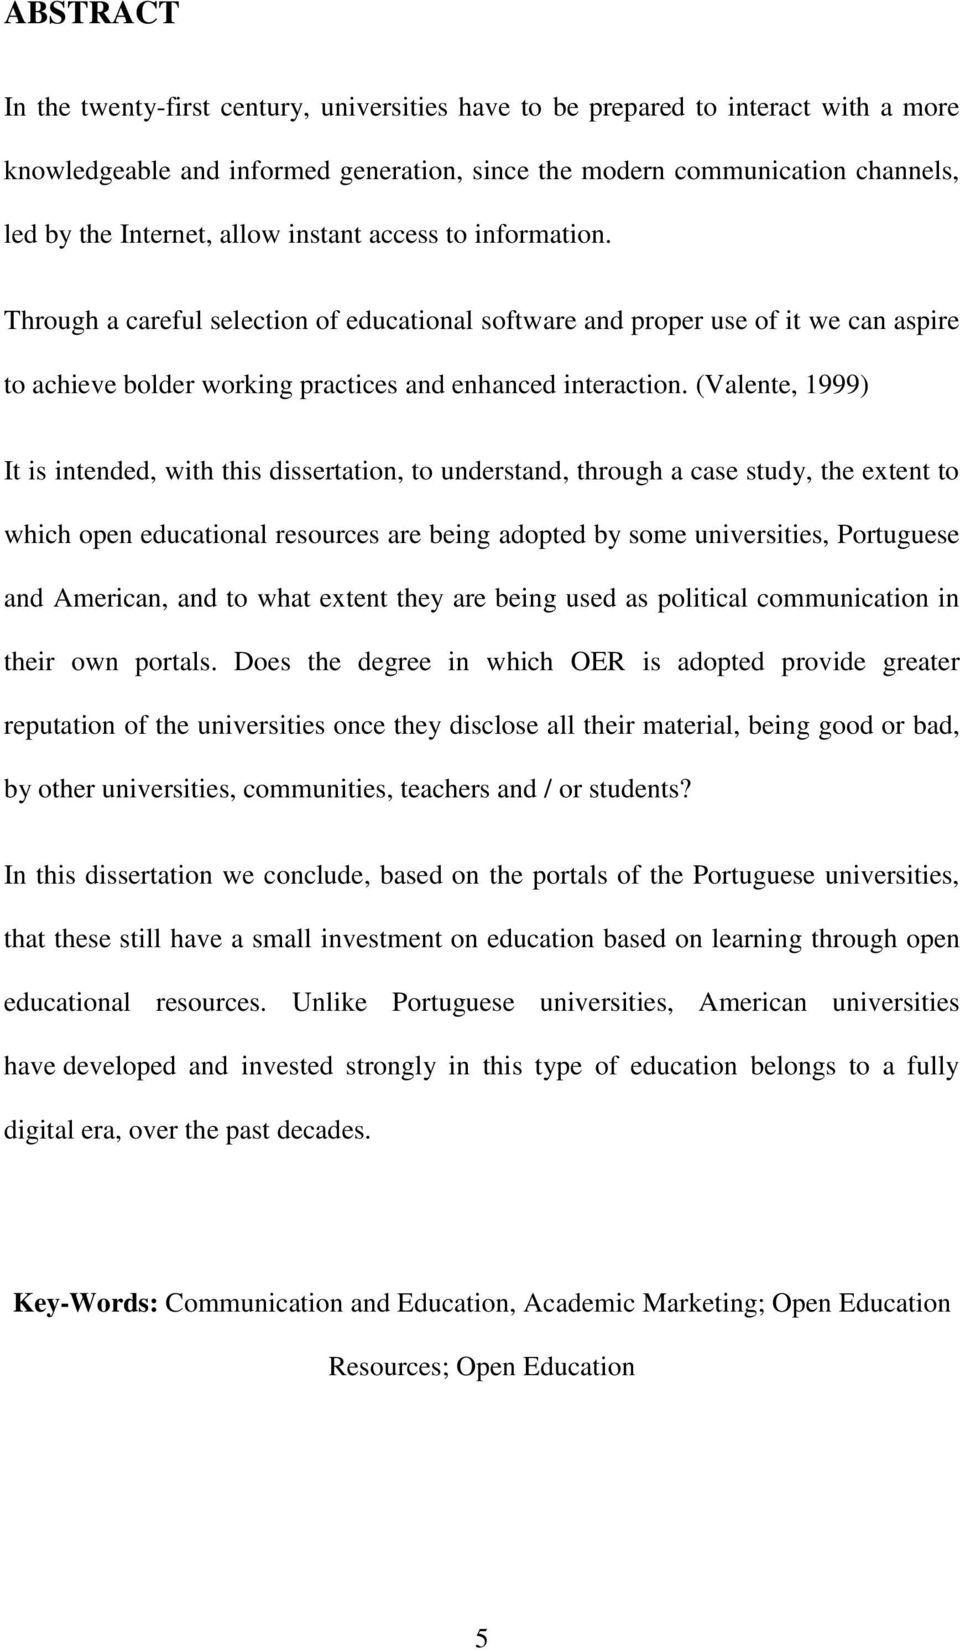 (Valente, 1999) It is intended, with this dissertation, to understand, through a case study, the extent to which open educational resources are being adopted by some universities, Portuguese and